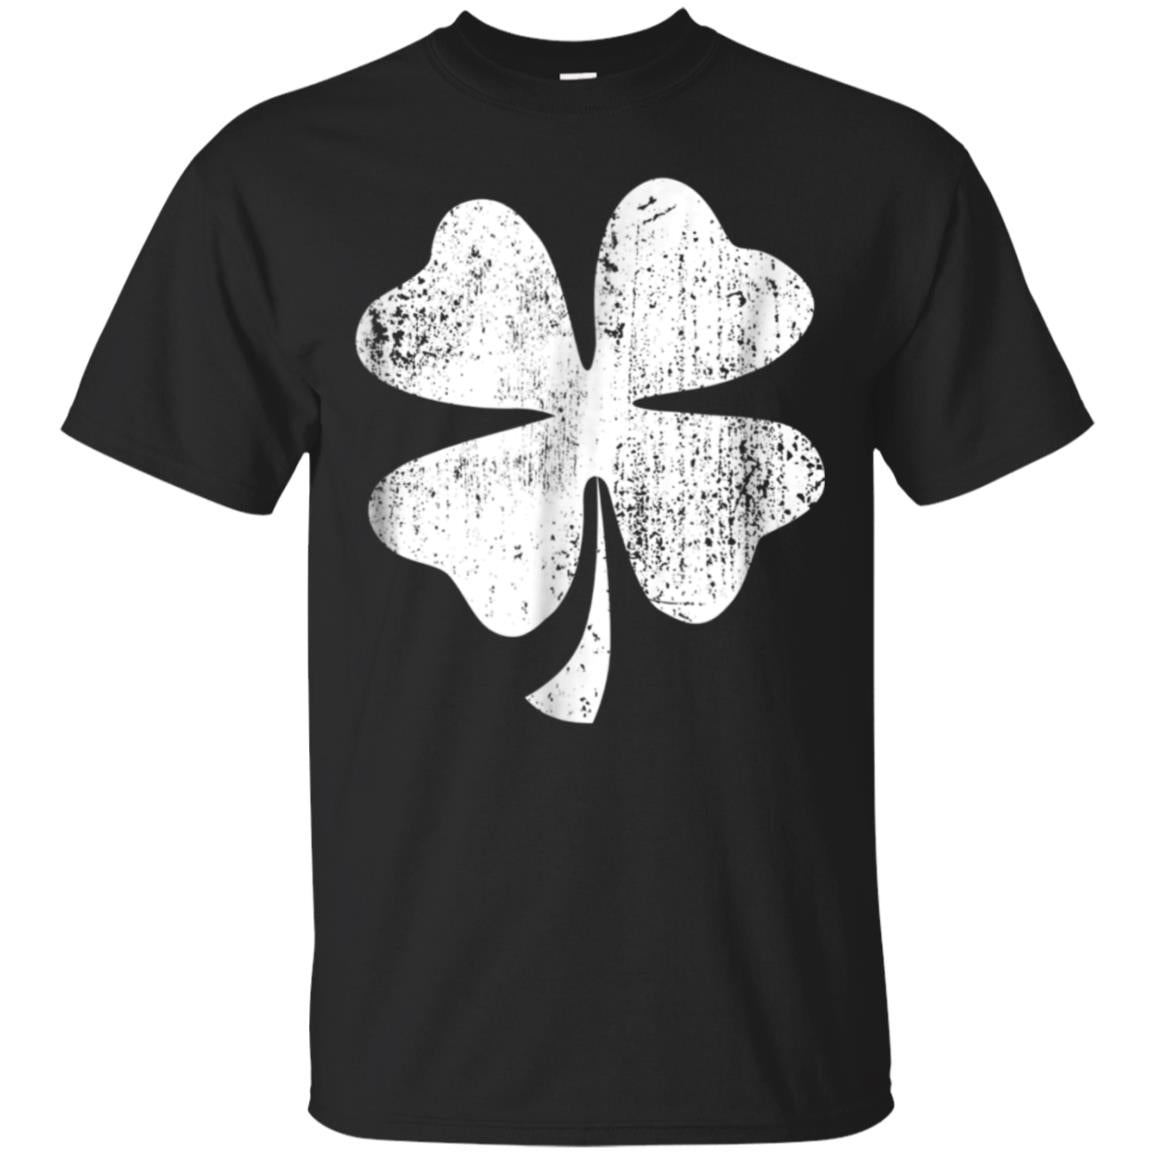 Vintage Style Clover St Patrick's Day T-Shirt 99promocode